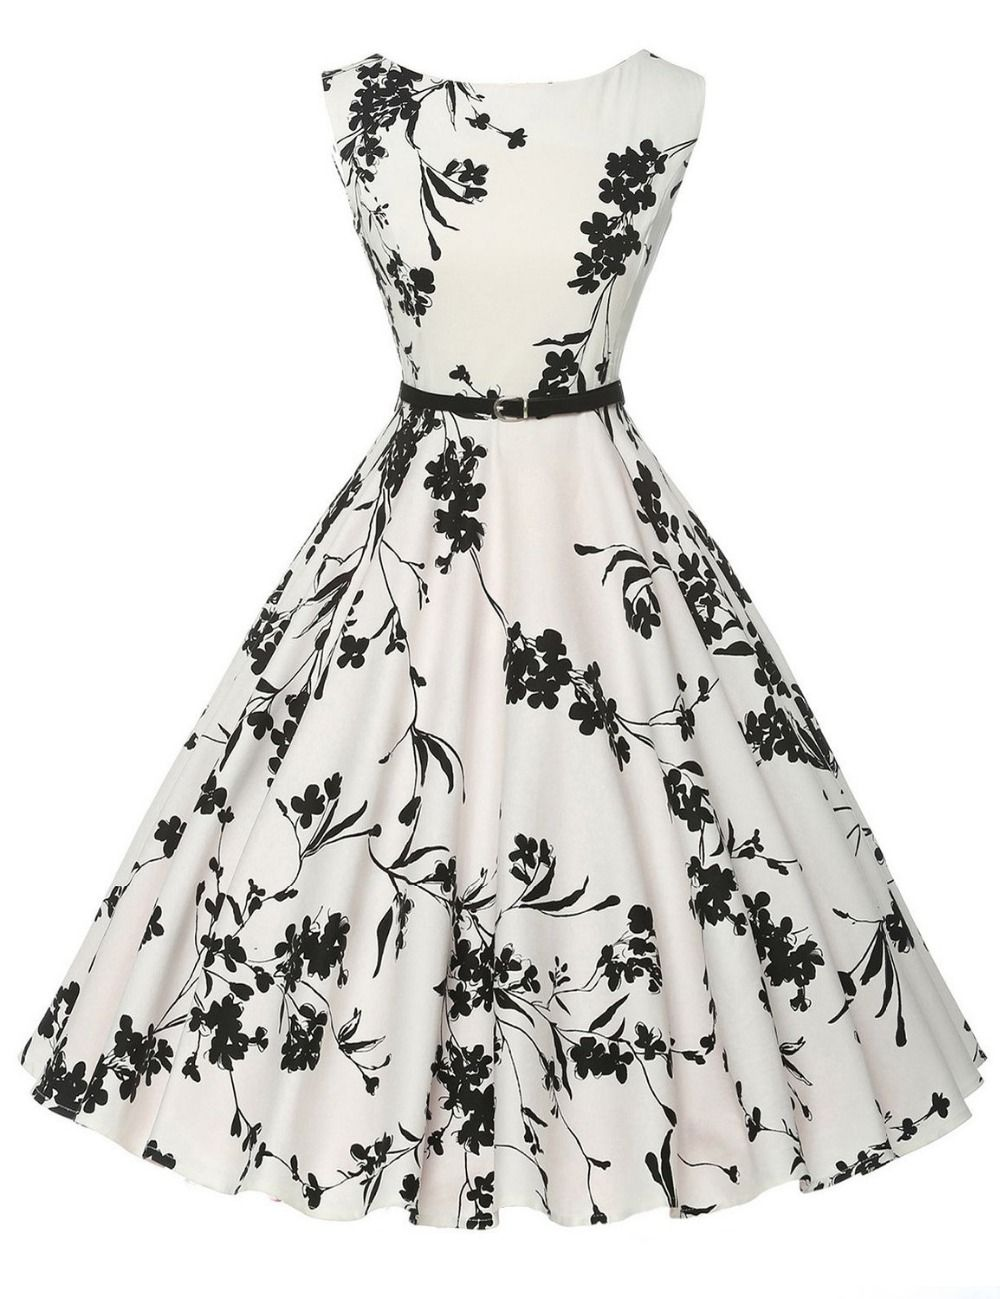 a34912bfb20e New Women Vintage 50s 60s Casual Dress Floral Printed Summer Sleeveless  Style Retro Audrey Hepburn Swing Pinup Rockabilly dress